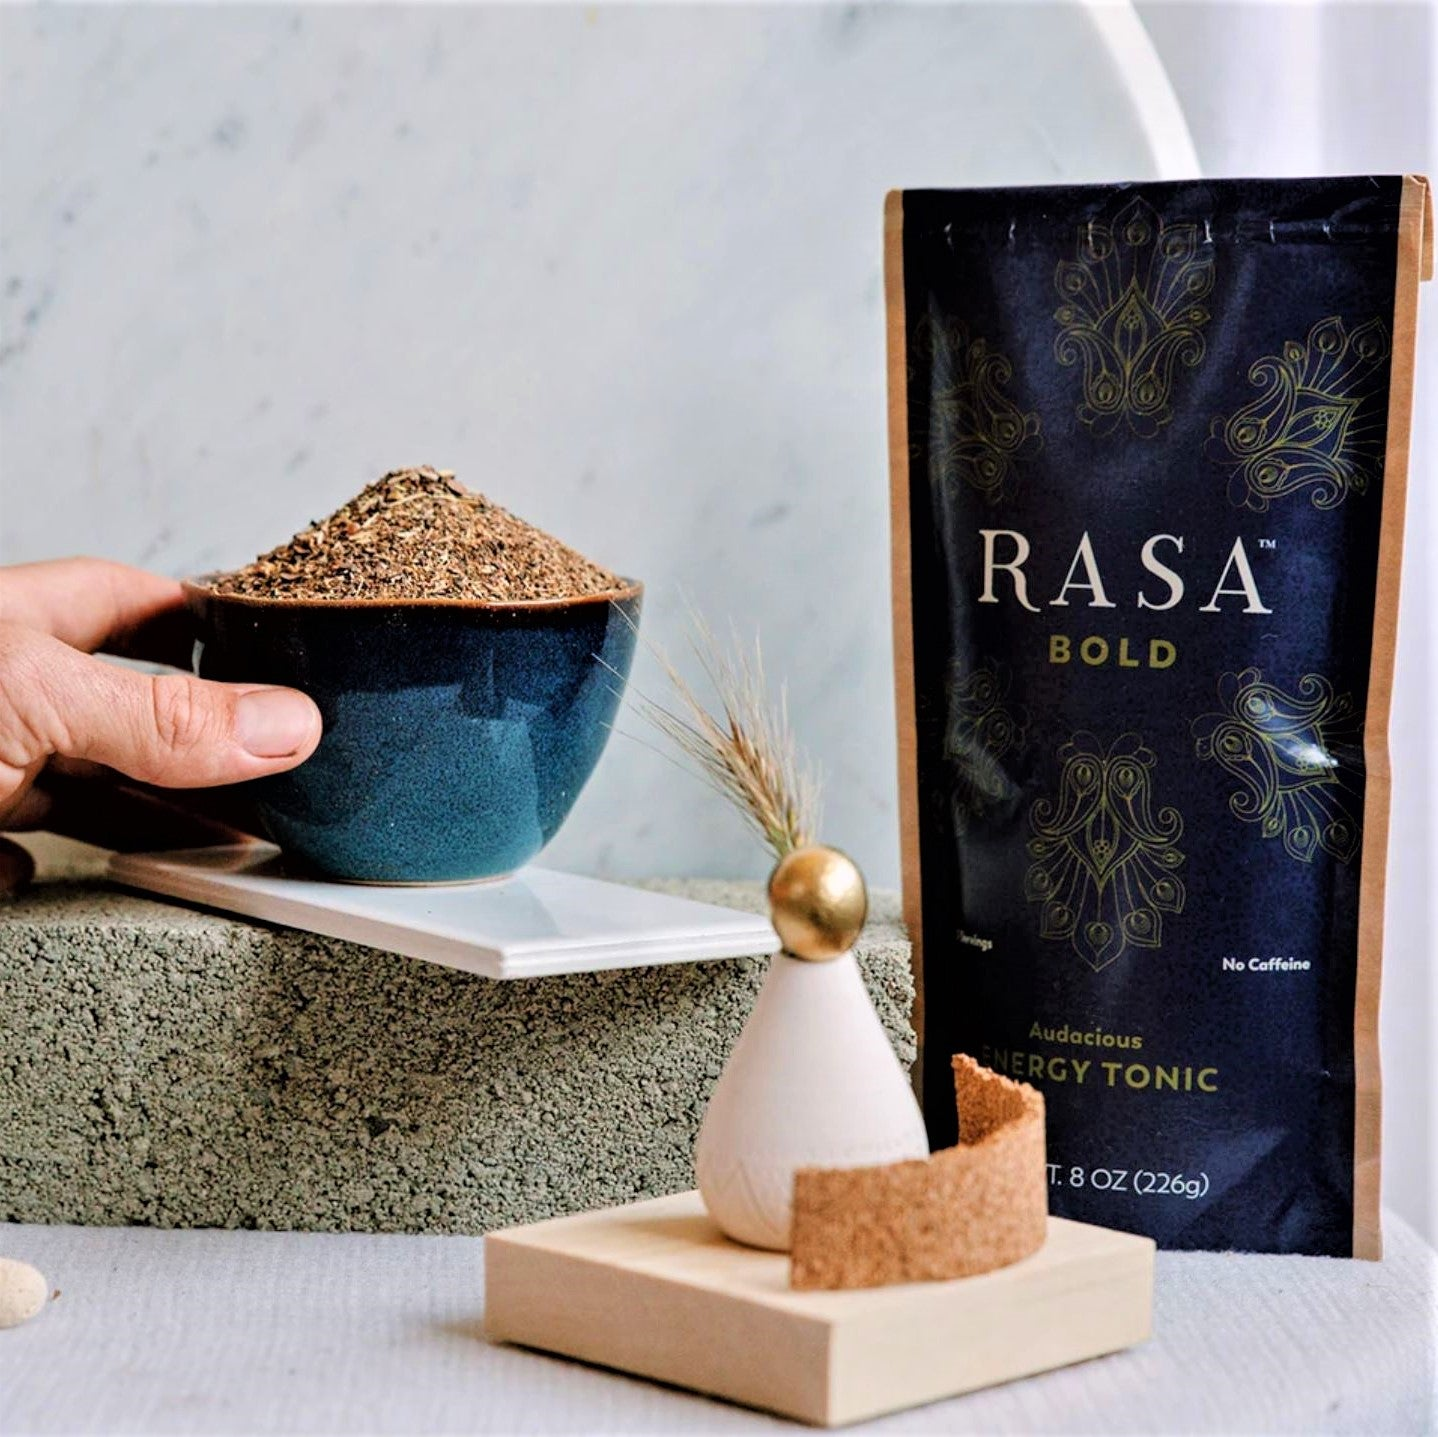 Hand holding the blended Adaptogens next to the Rasa Bold Package